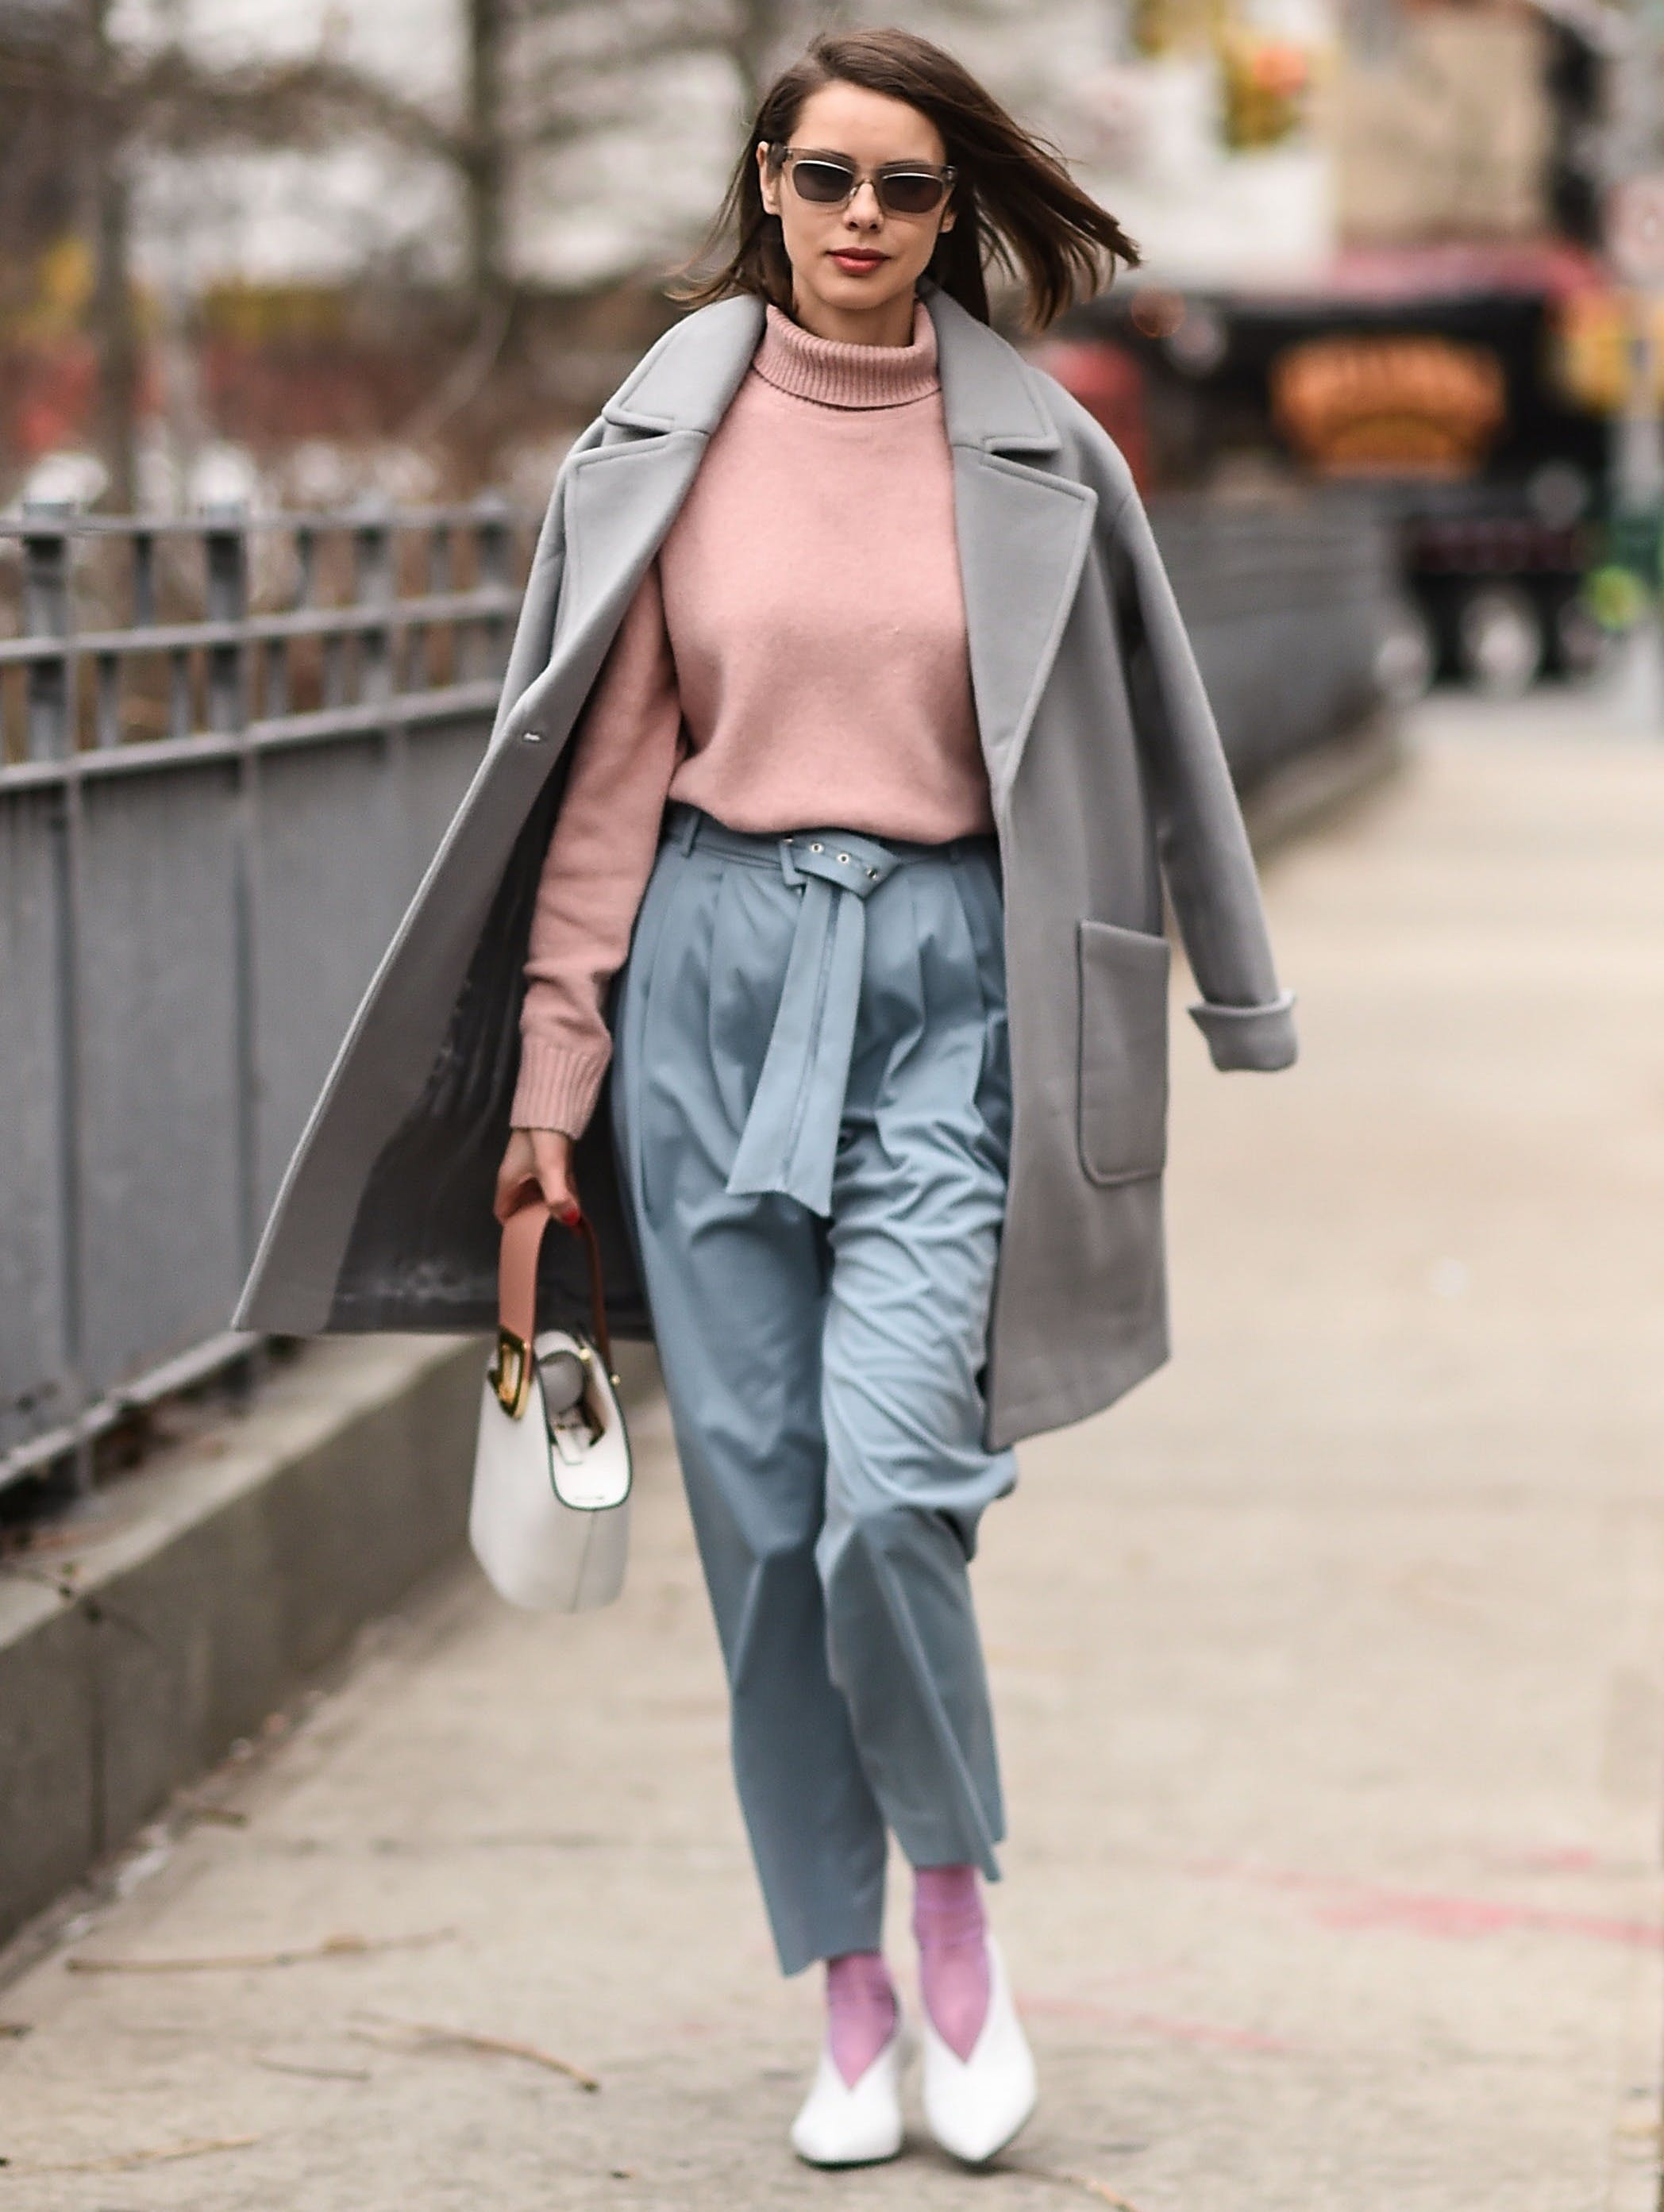 woman wearing gray and pastels